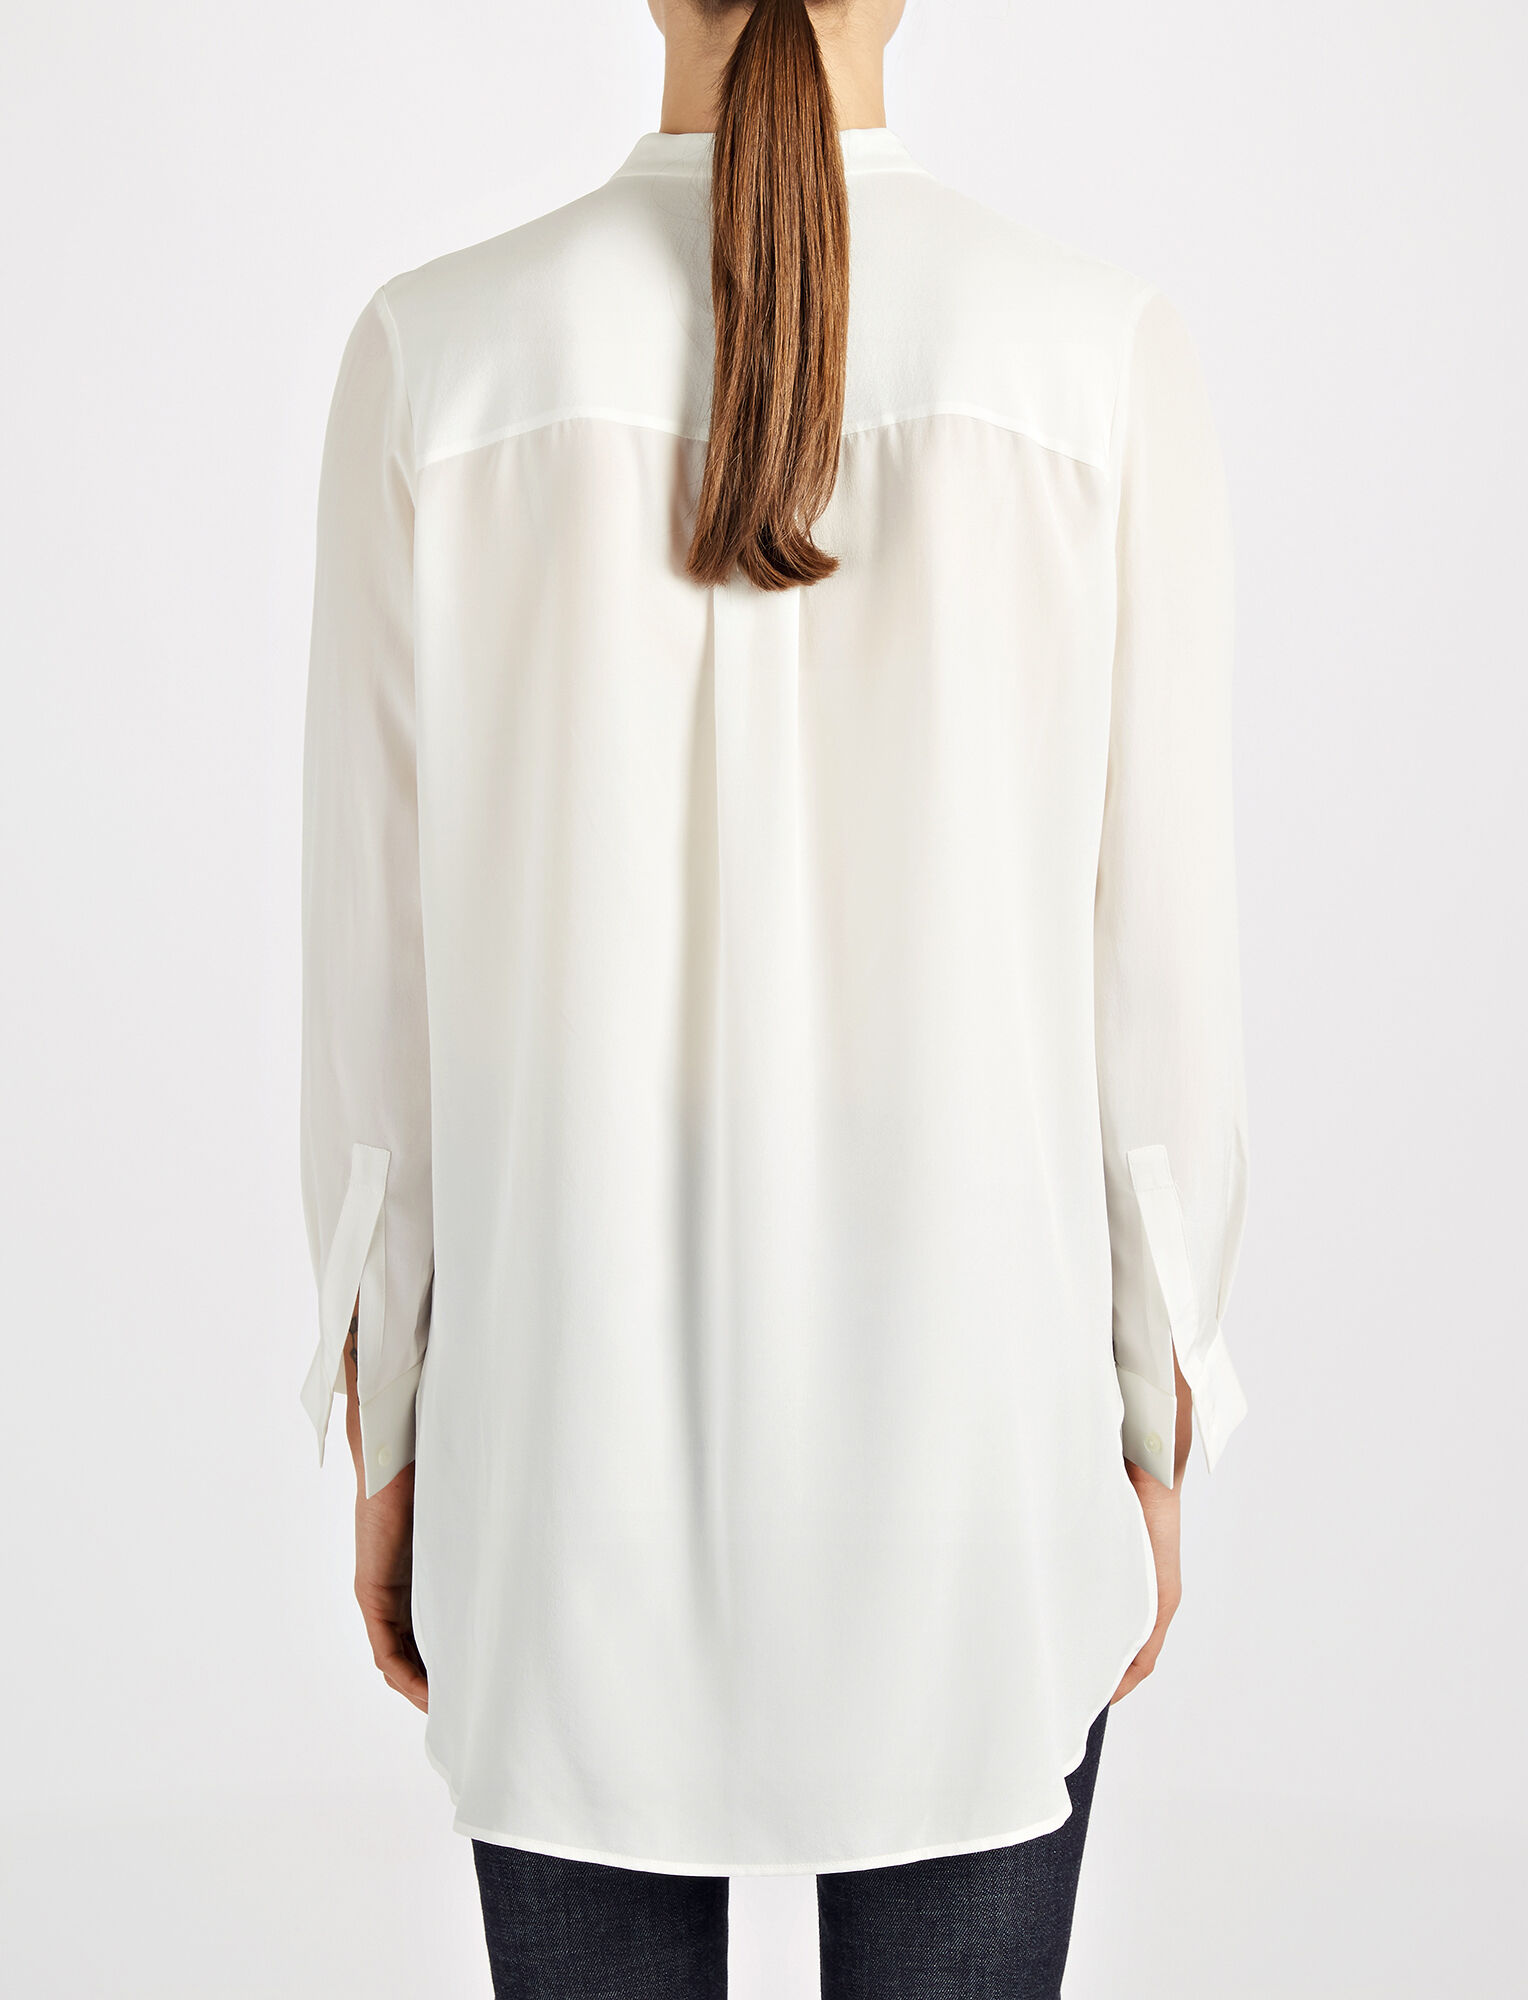 Joseph, Crepe de Chine Dara Blouse, in OFF WHITE